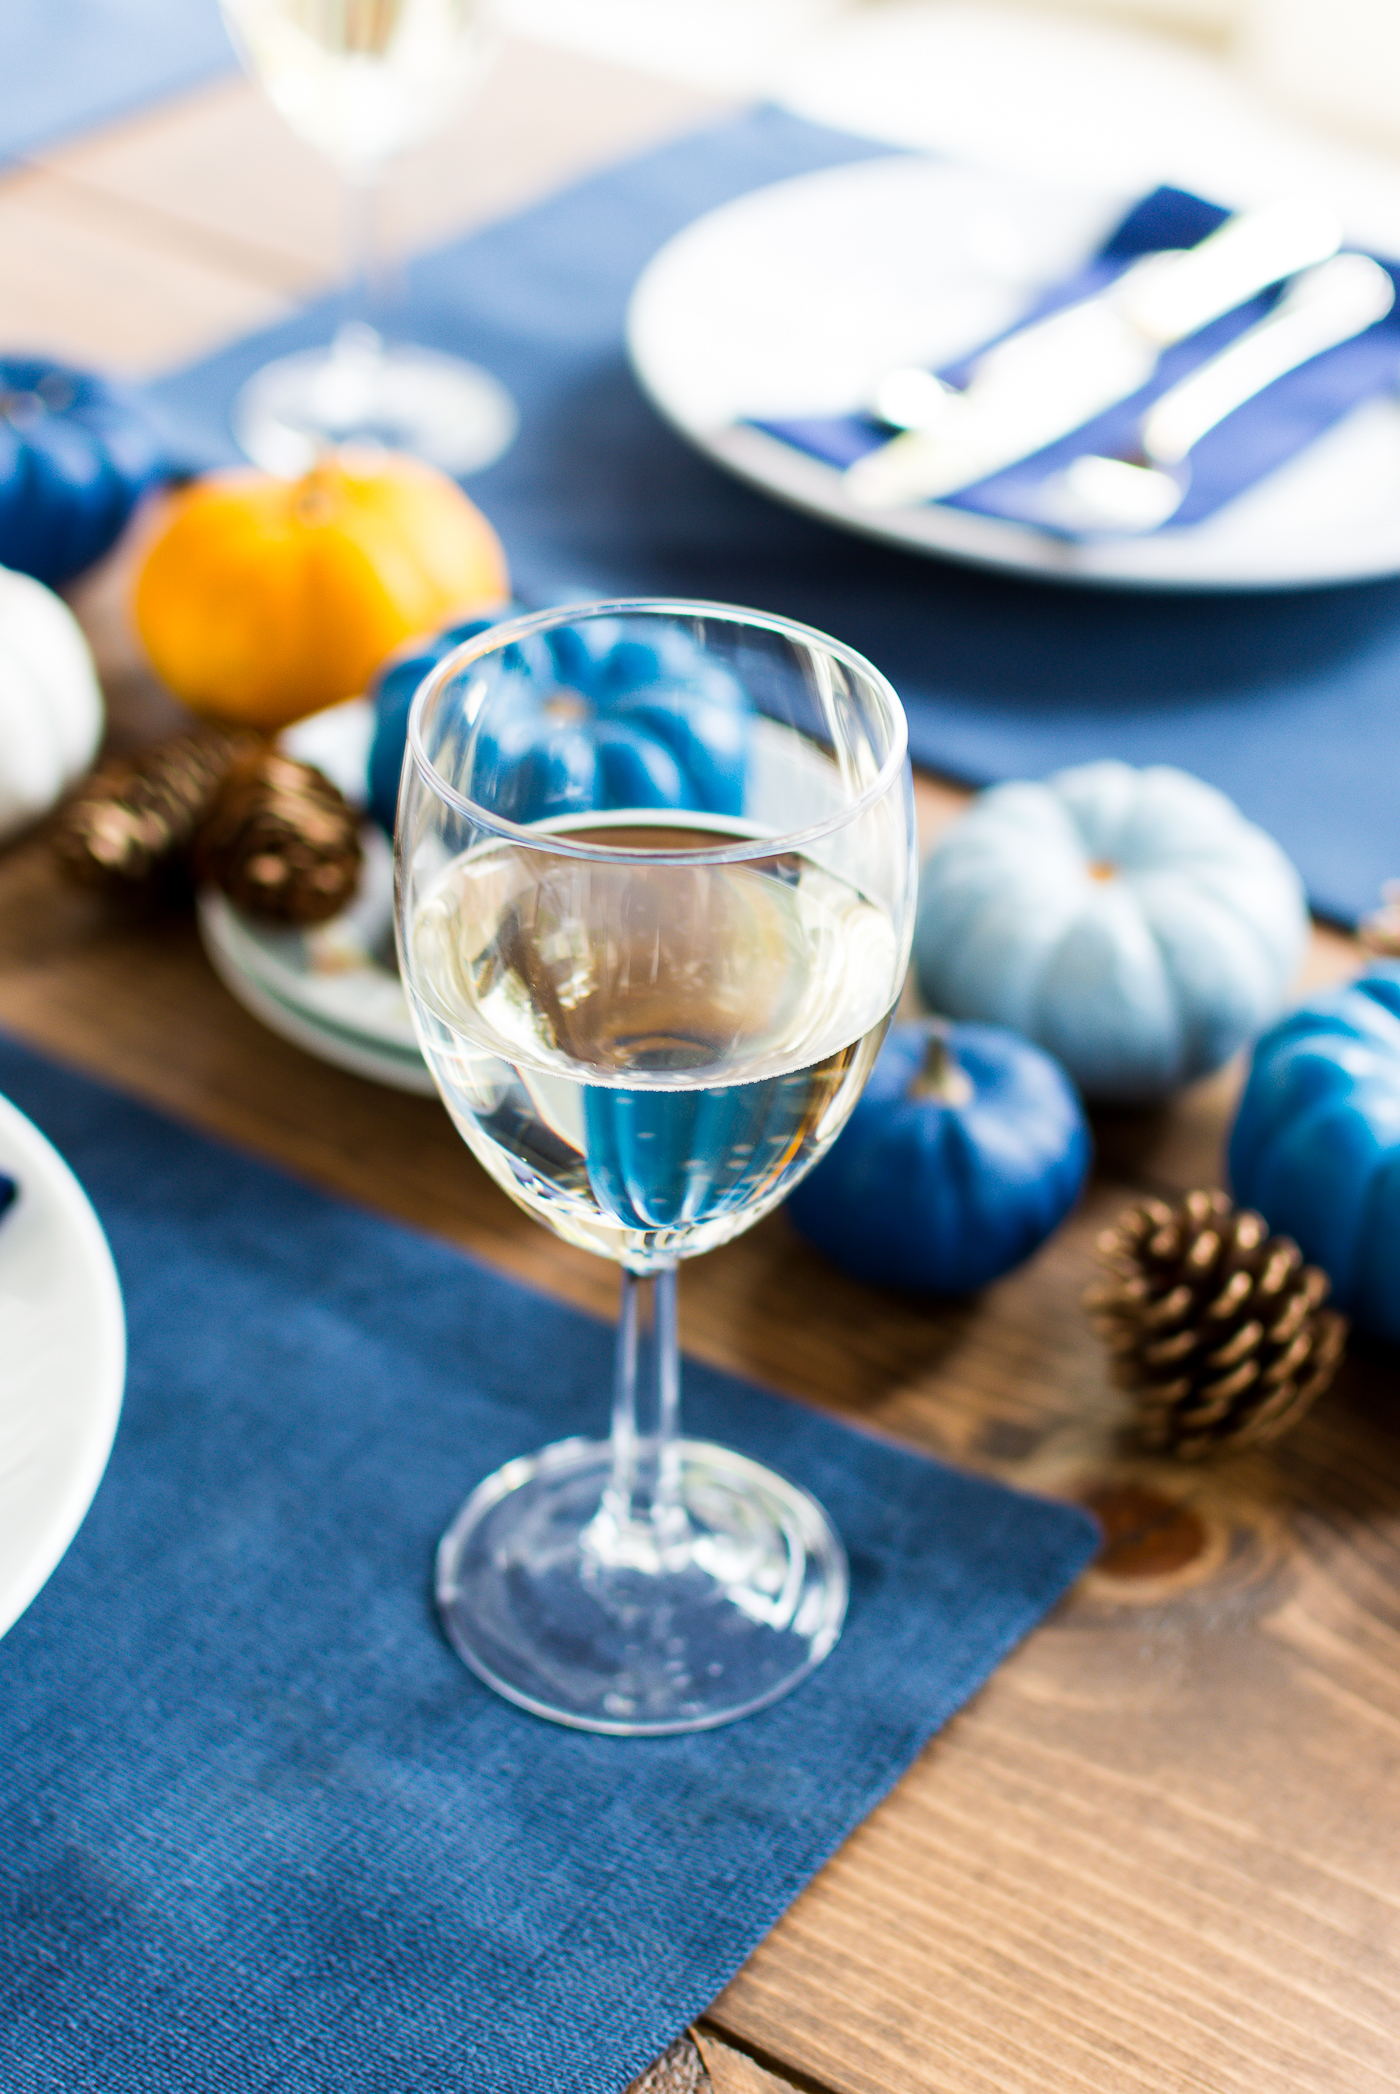 thanksgiving-table-setting-idea-navy-blue-white-orange-with-gallo-wine-pinot-grigio-itallstartedwithpait-com-37